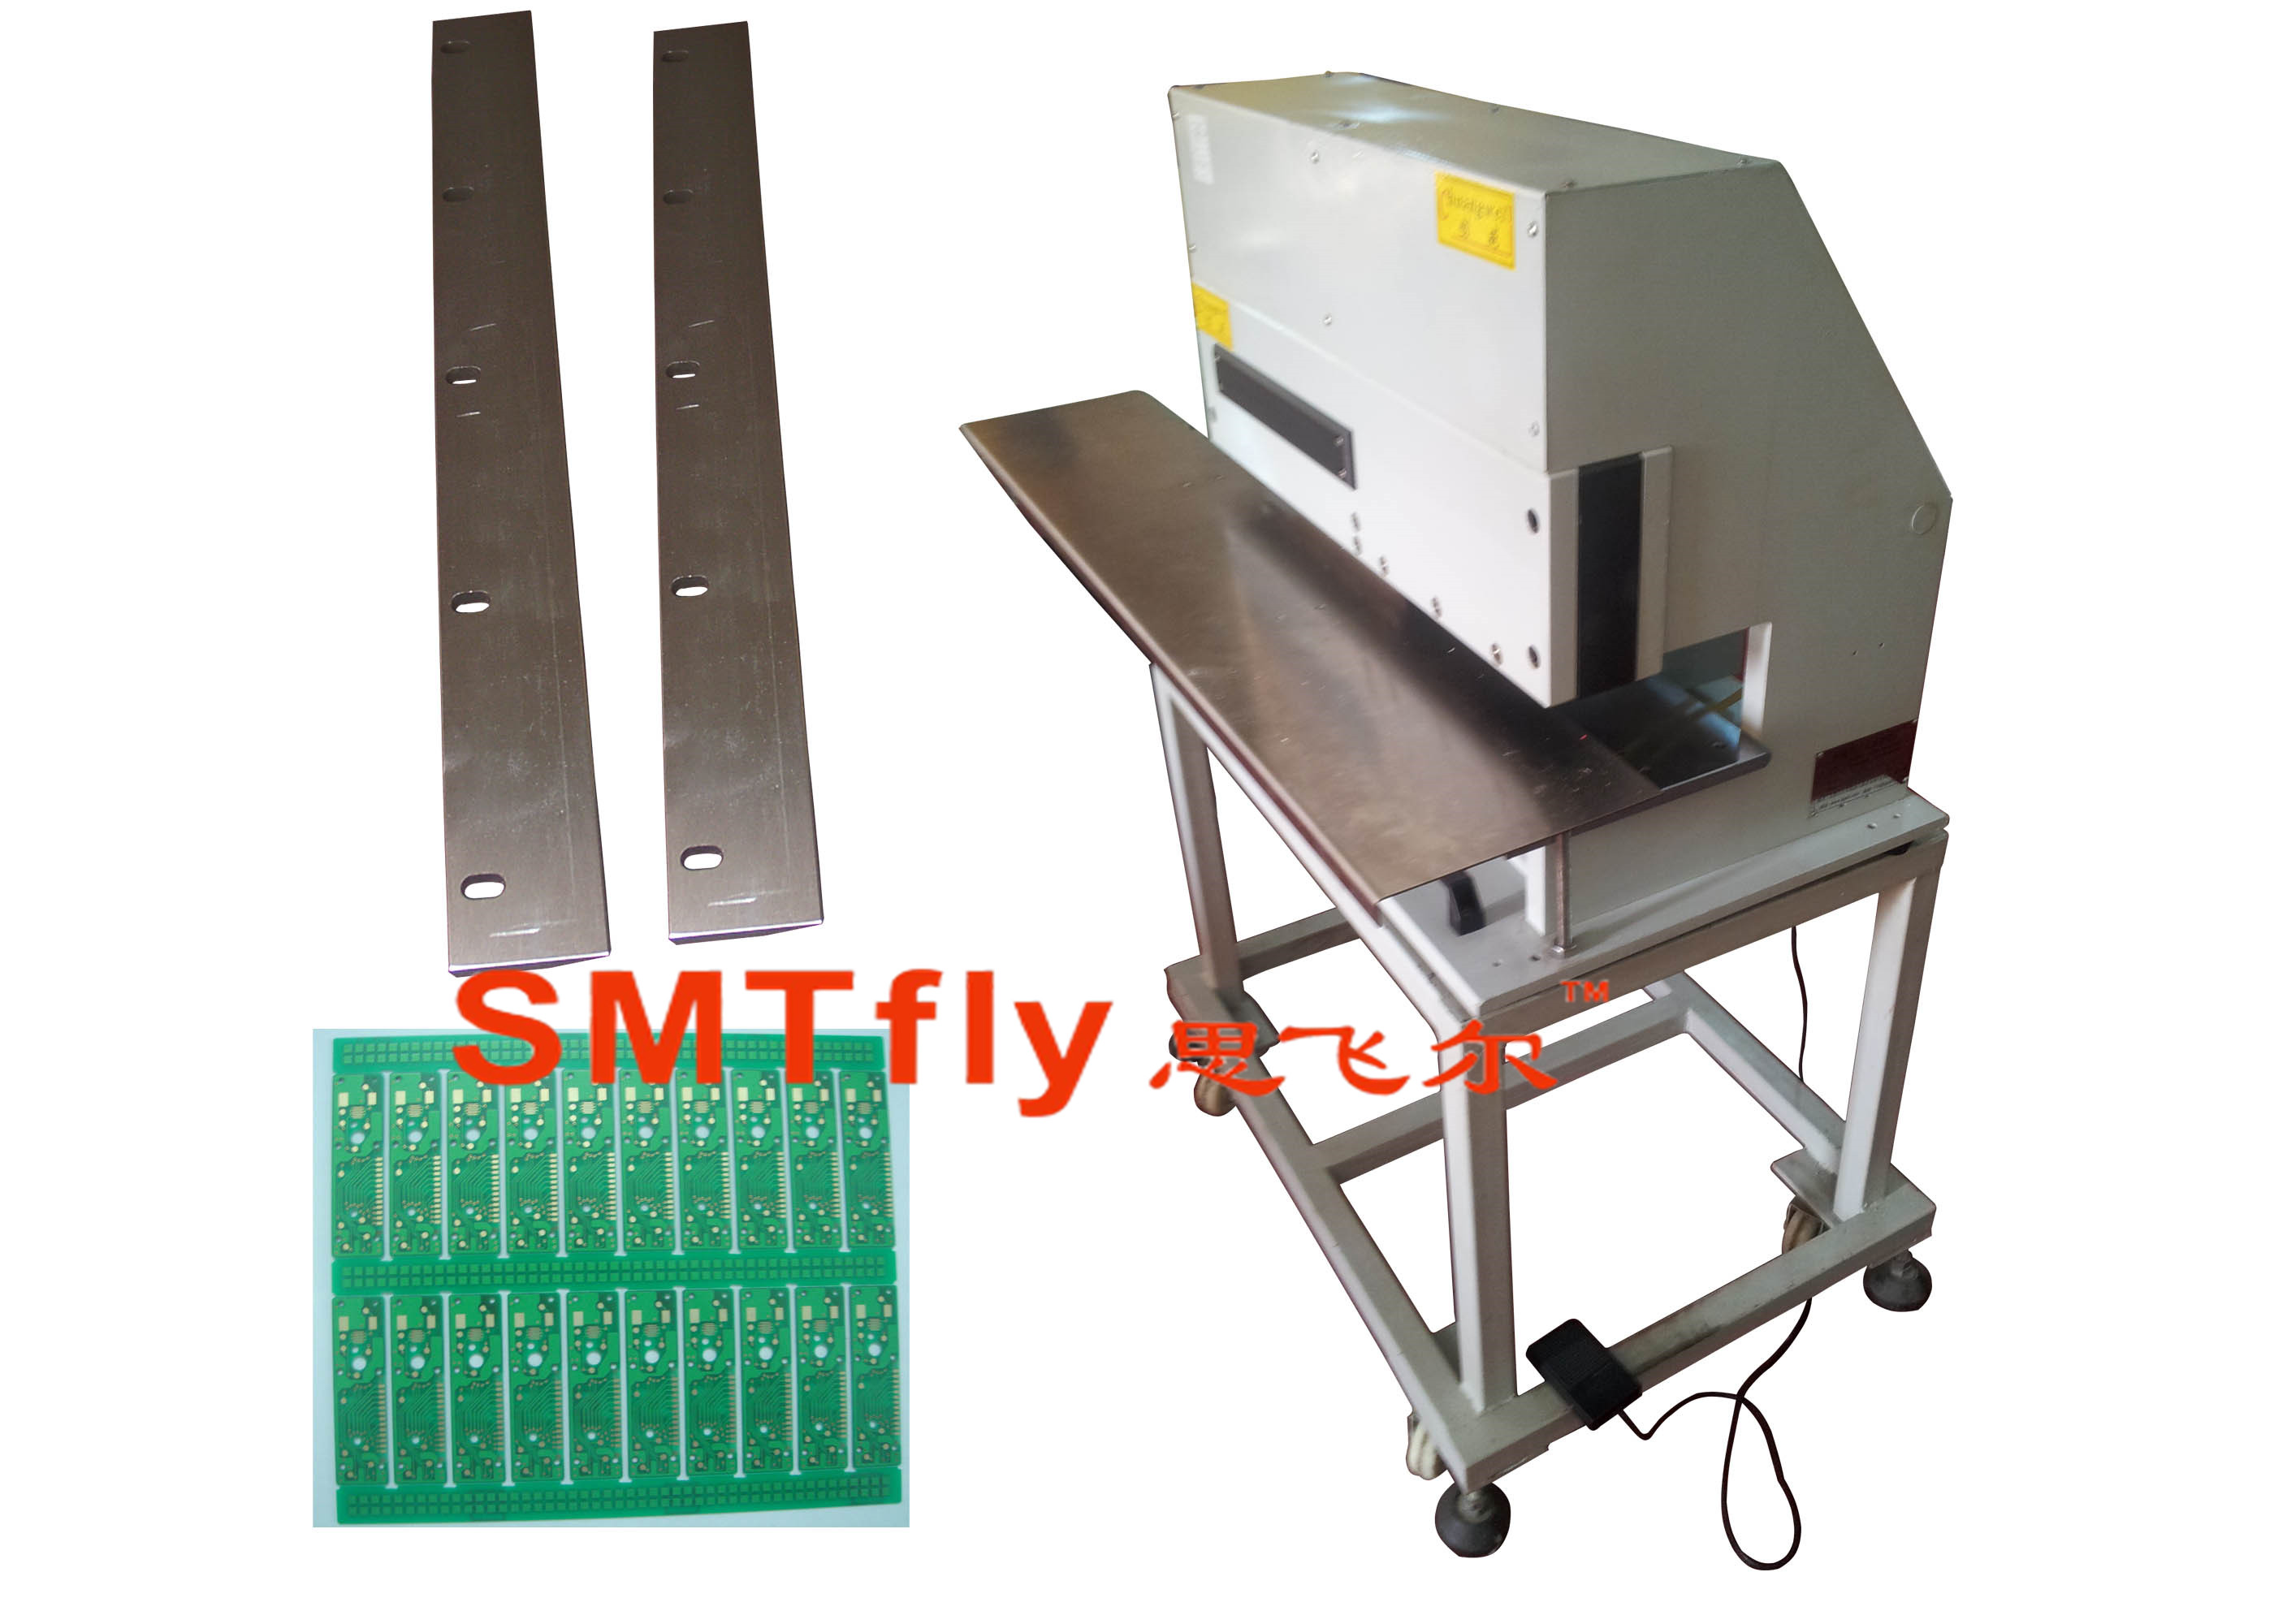 Manul Pcb Depaneling China Automatic V Cut Singulation Machine For Printed Circuit Cutting Toolsmtfly 3